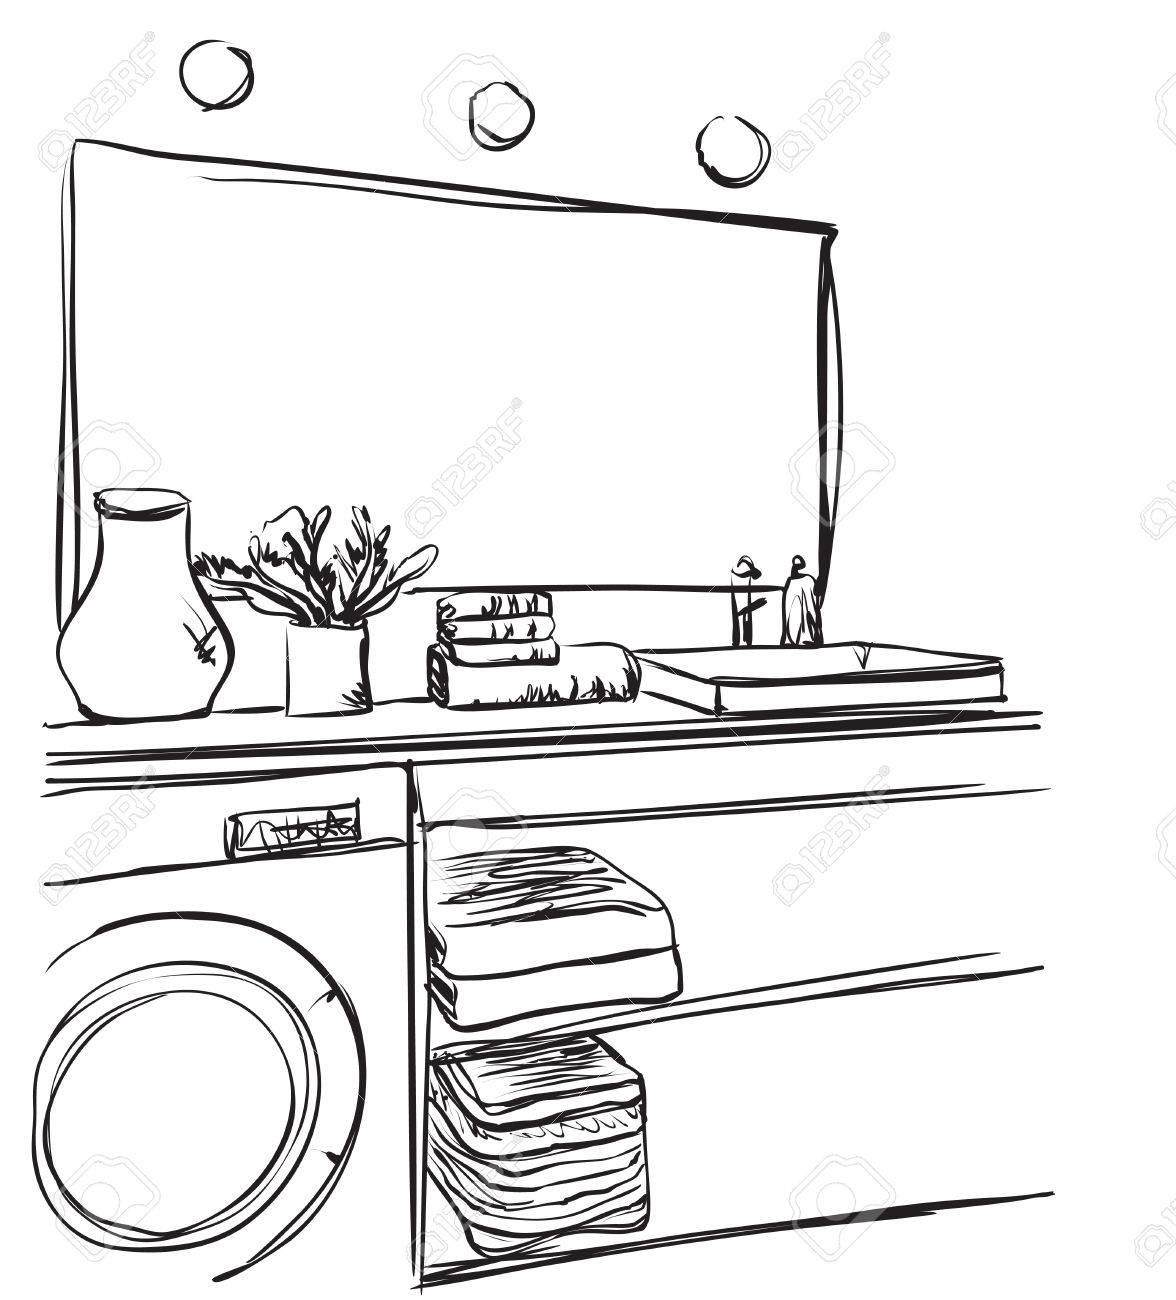 hand mirror sketch. Hand Drawn Bathroom Washbasin Mirror And Other Furniture Sketch Stock Vector